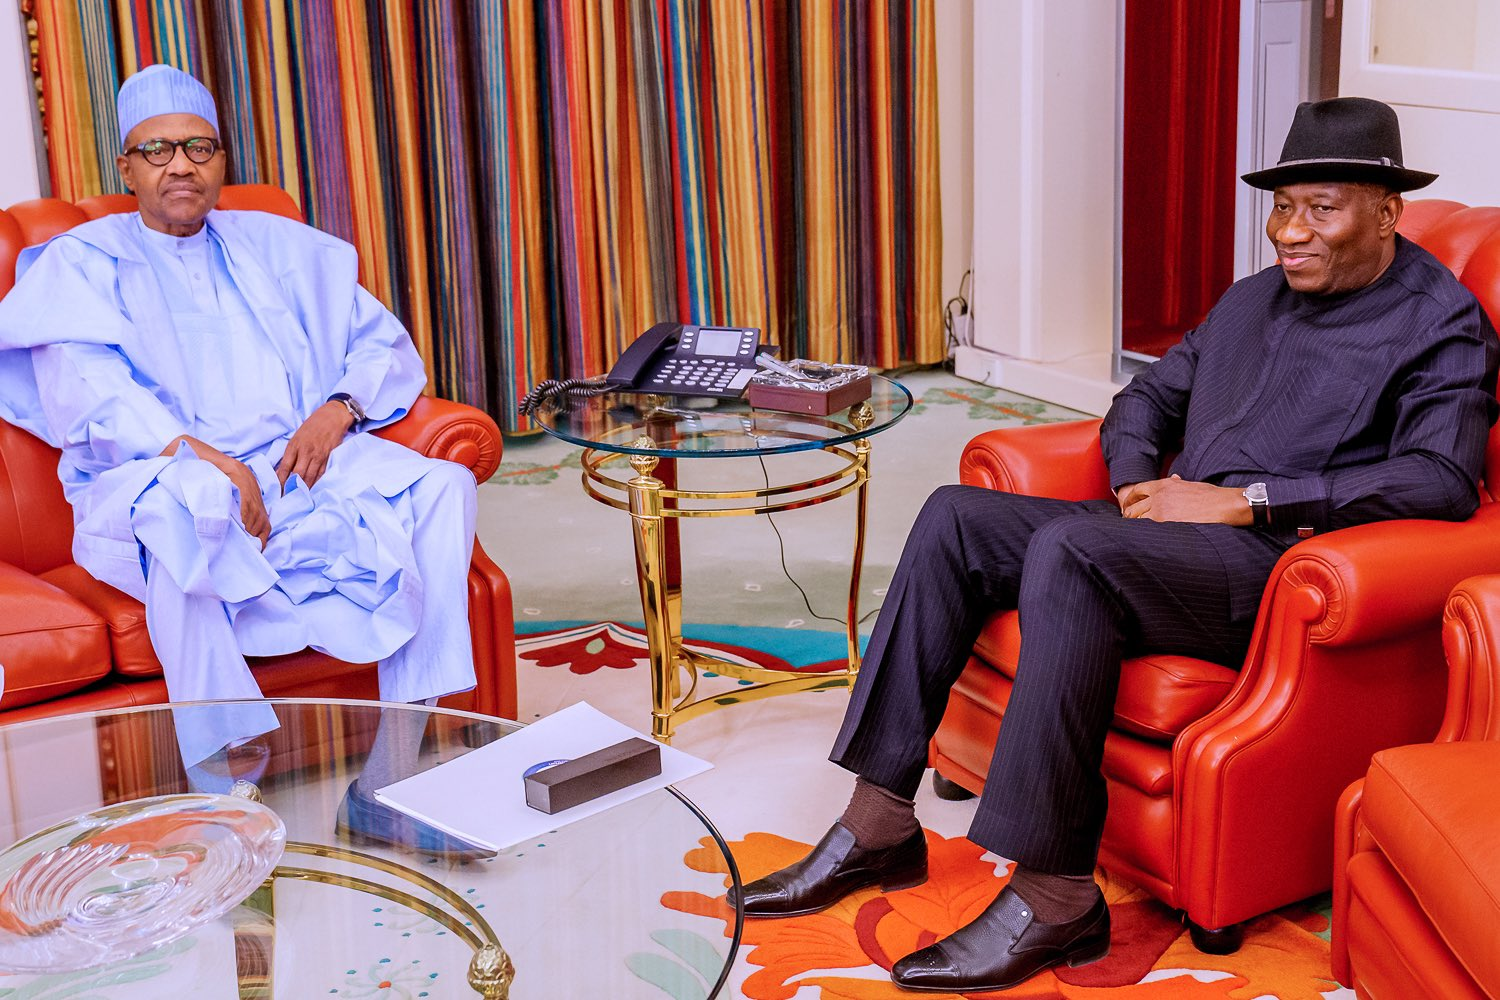 Jonathan visits Aso Rock, spends 10 minutes with Buhari in a closed door meeting